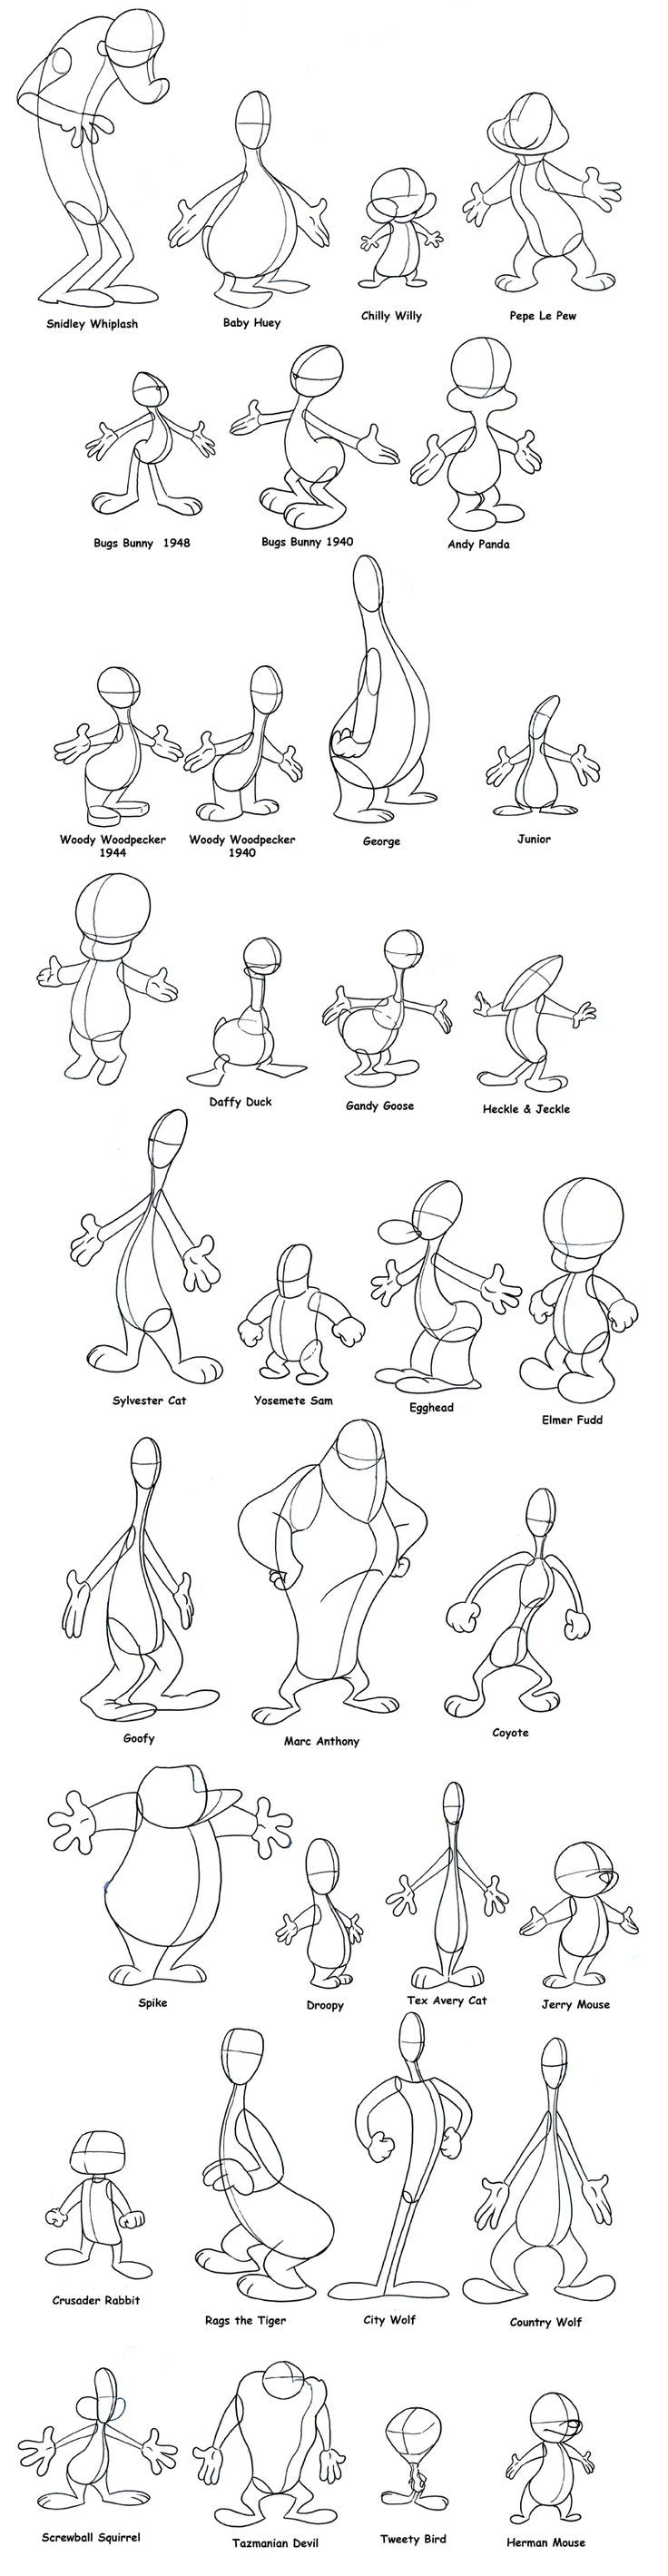 Character Design Shape Theory : Best images about character design on pinterest foot